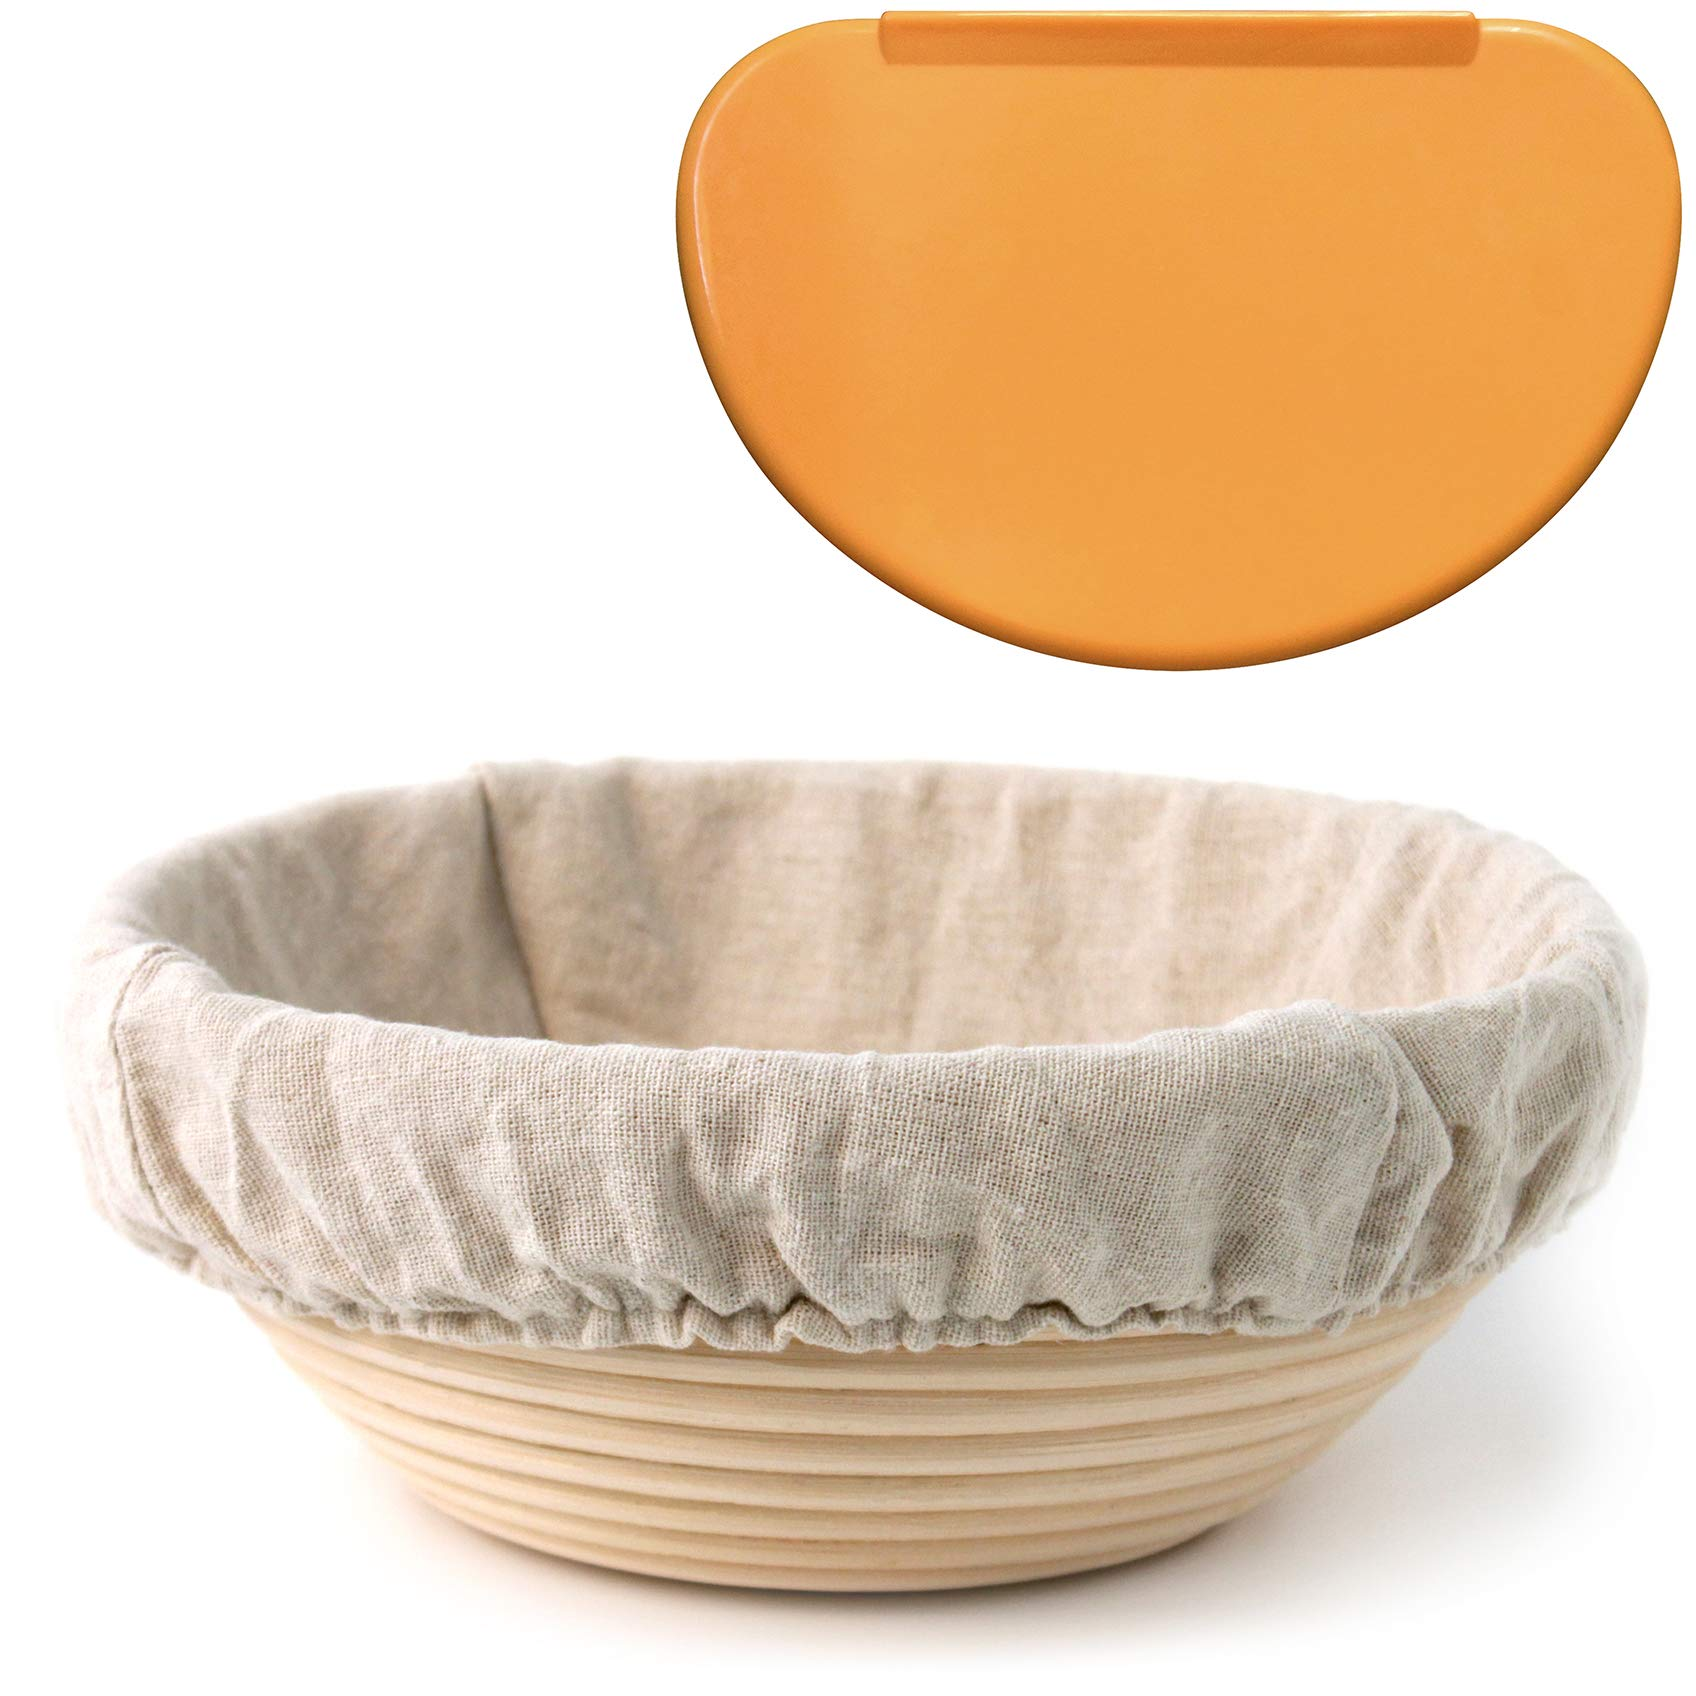 Banneton Proofing Basket 8.5'' Round - with Brotform Cloth Liner for Starter Rising Dough & Flexible Bowl Scraper for Shaping Sourdough Loaf | Artisan Bread Baking Supplies by Indigo True